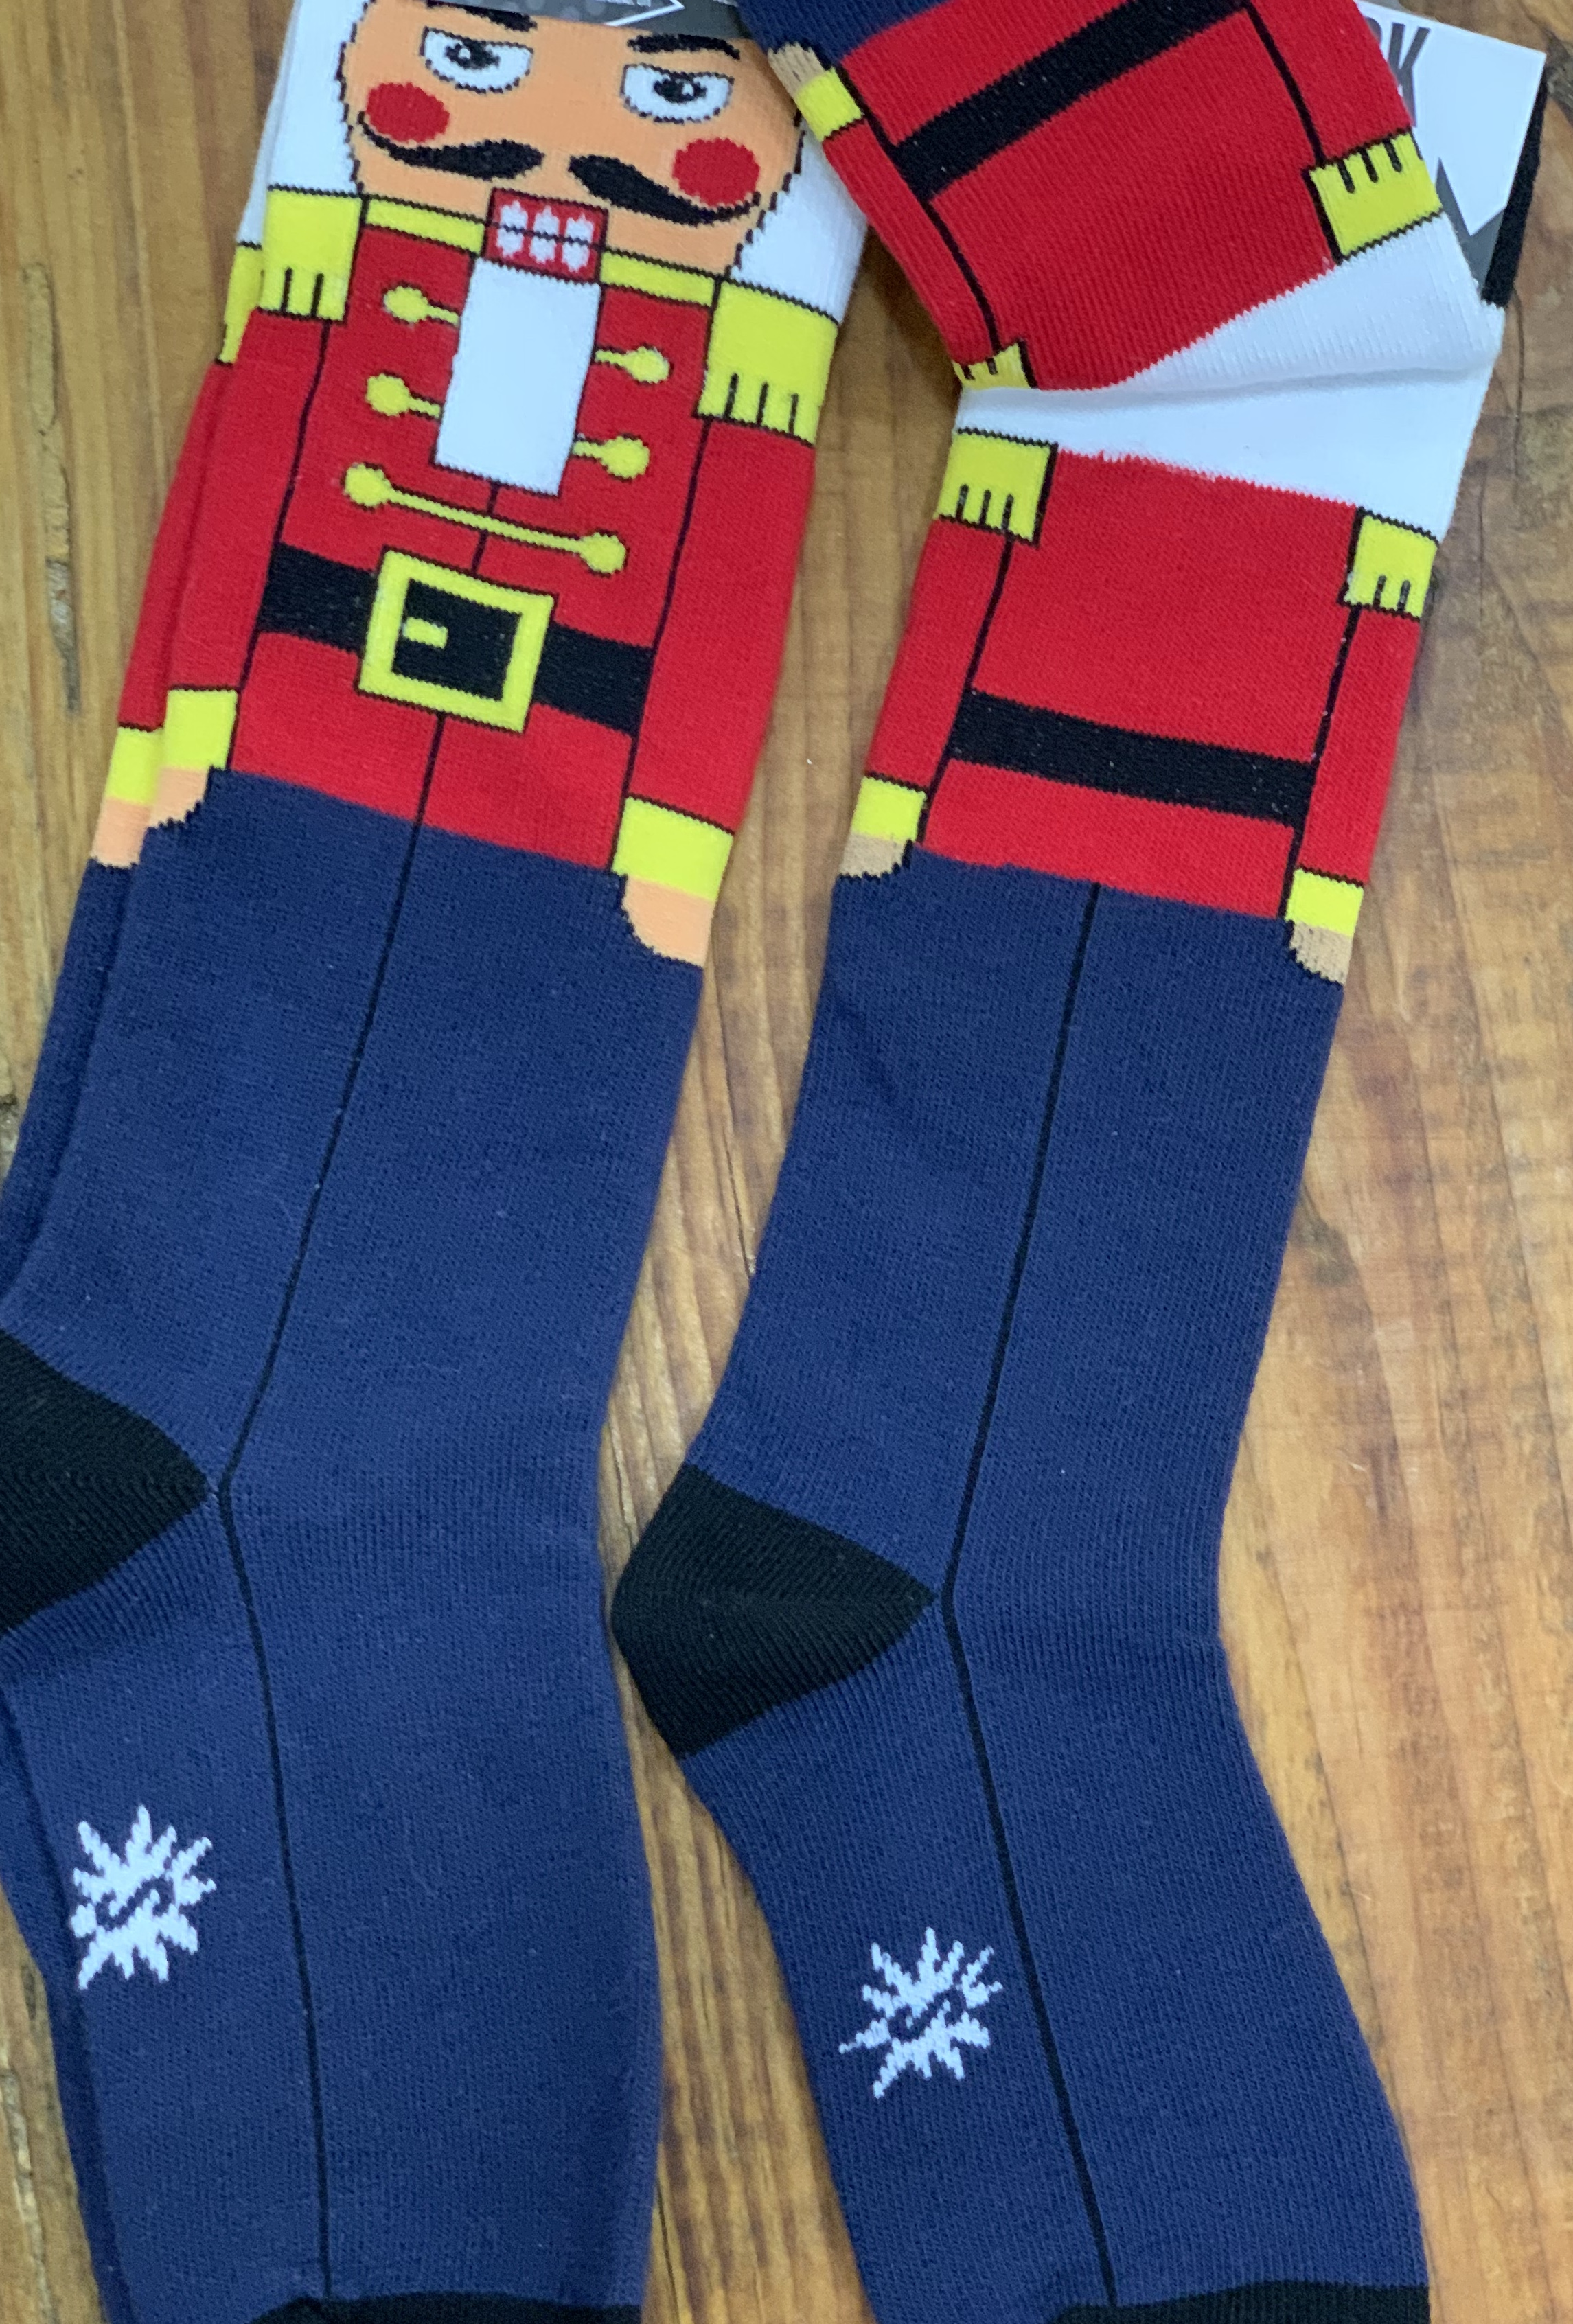 Junior Nutcracker socks